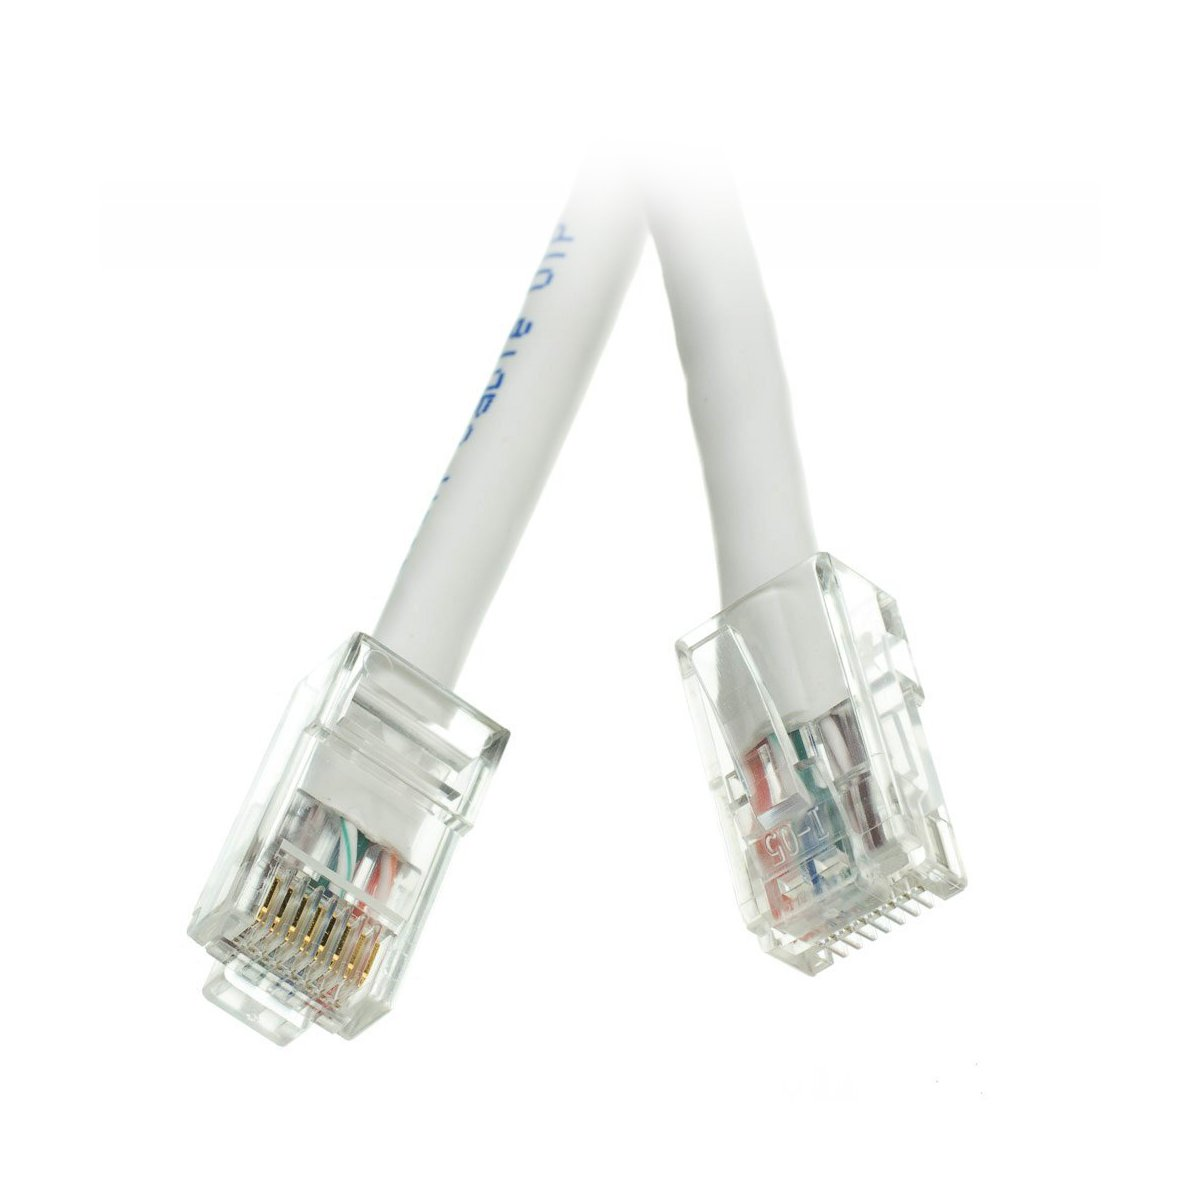 Ce Cat5e 350mhz 1 Feet Utp Bootless Cable Red Cables Ethernet Patch Snagless Molded Boot 7 Foot Cne69333 Computers Accessories